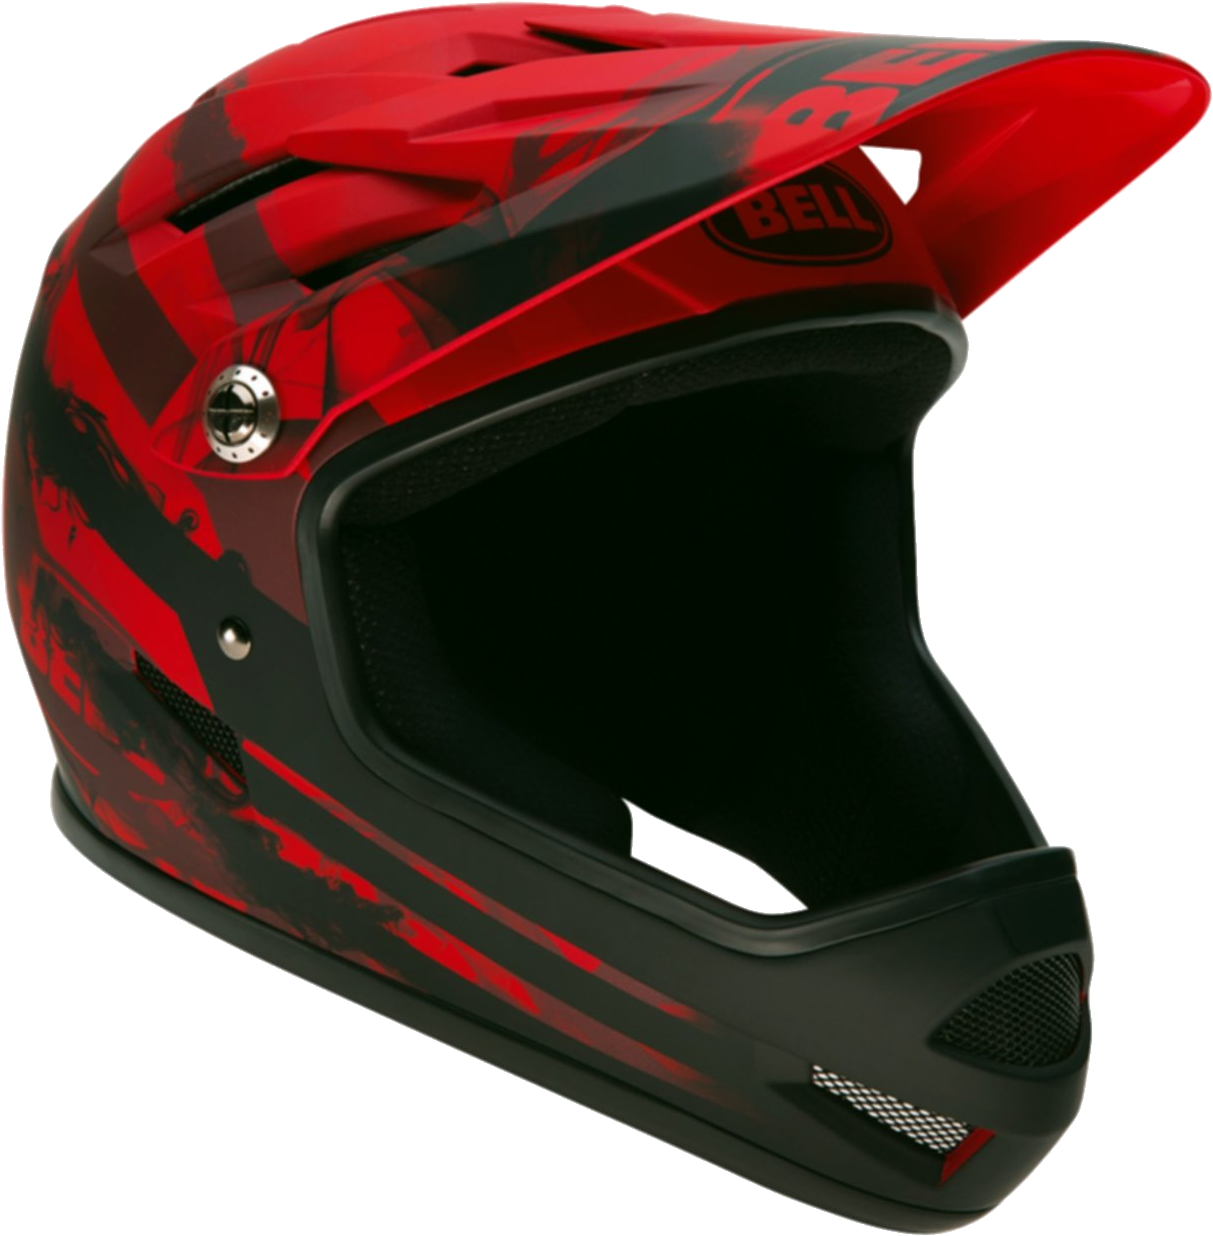 Motorcycle clipart red dirt. Helmet png image purepng